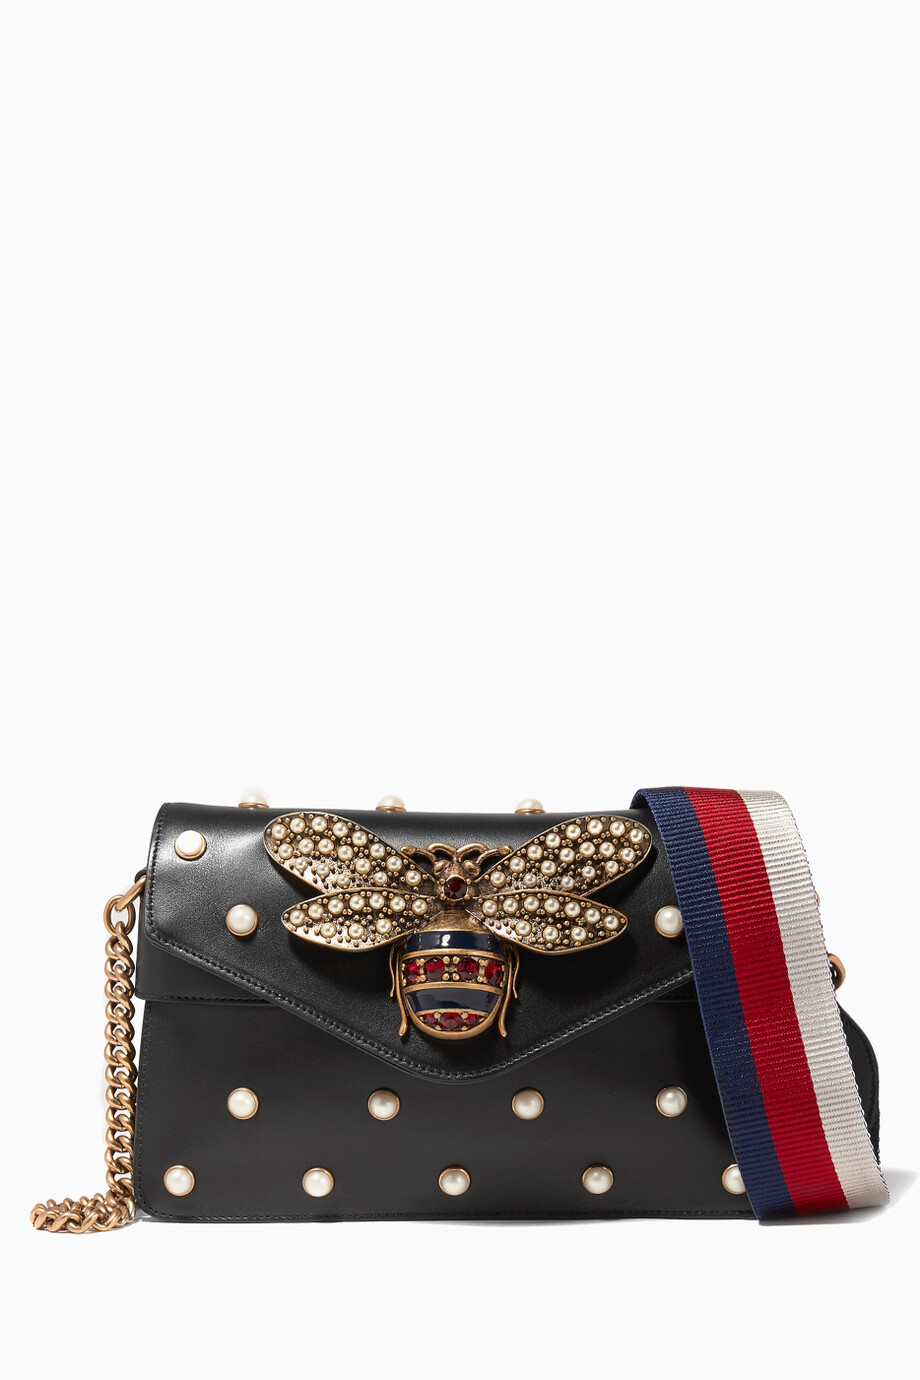 60e8e6351b5b Shop Gucci Black Black Broadway Leather Chain Clutch for Women ...